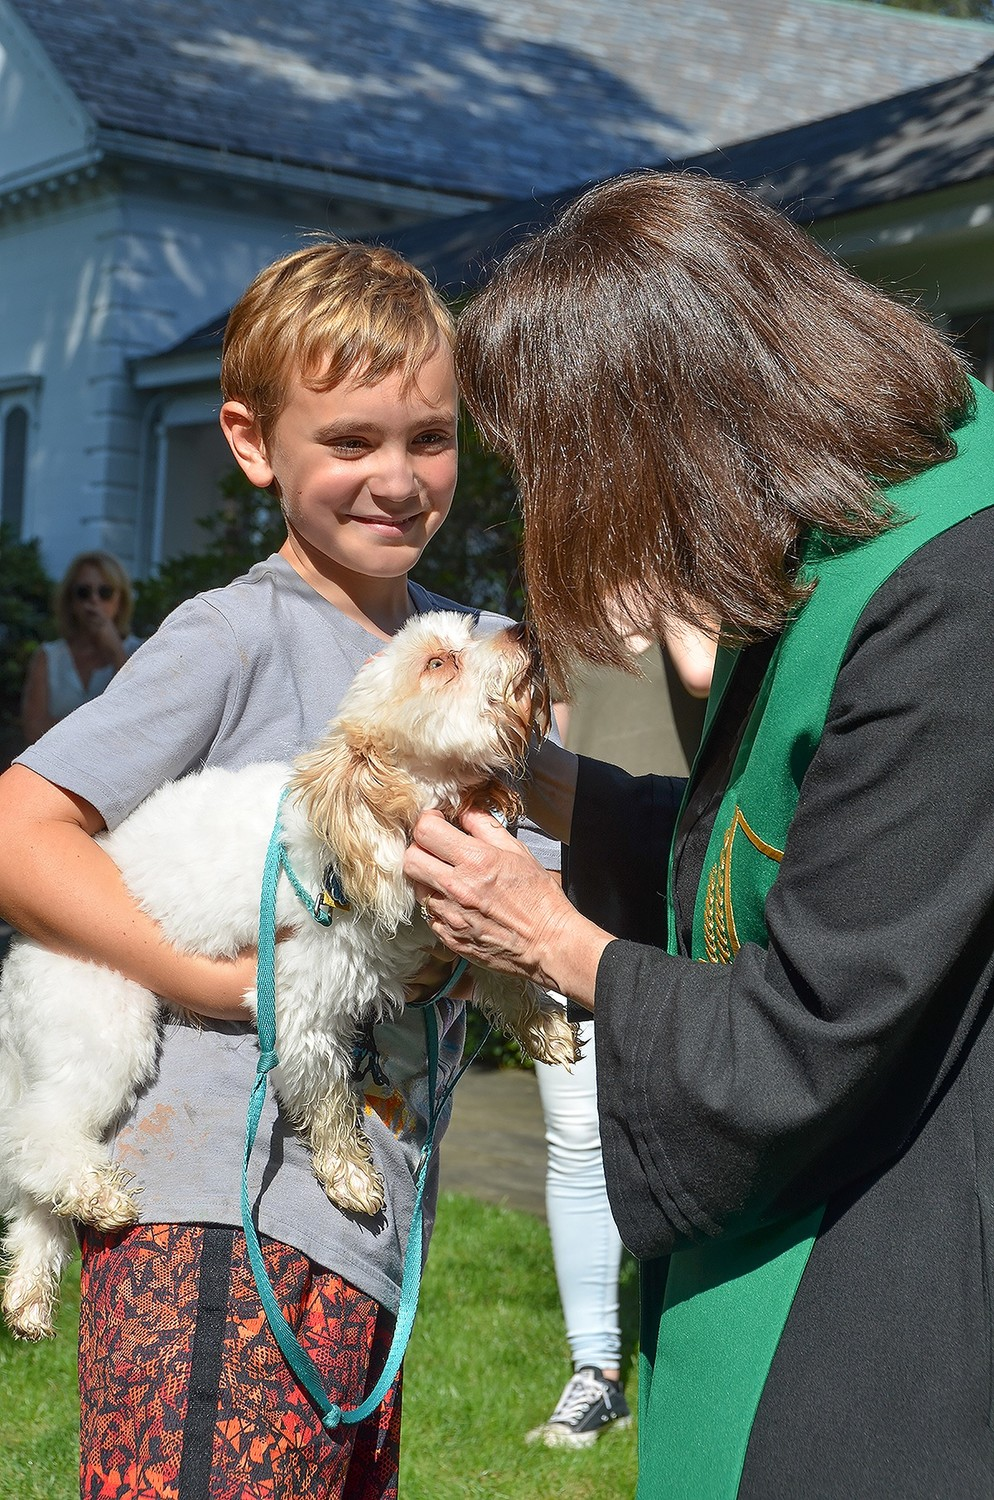 Robert Ross was happy to have his dog blessed by Rev. Vicky Eastland at Brookville Church's Blessing of the Animals.